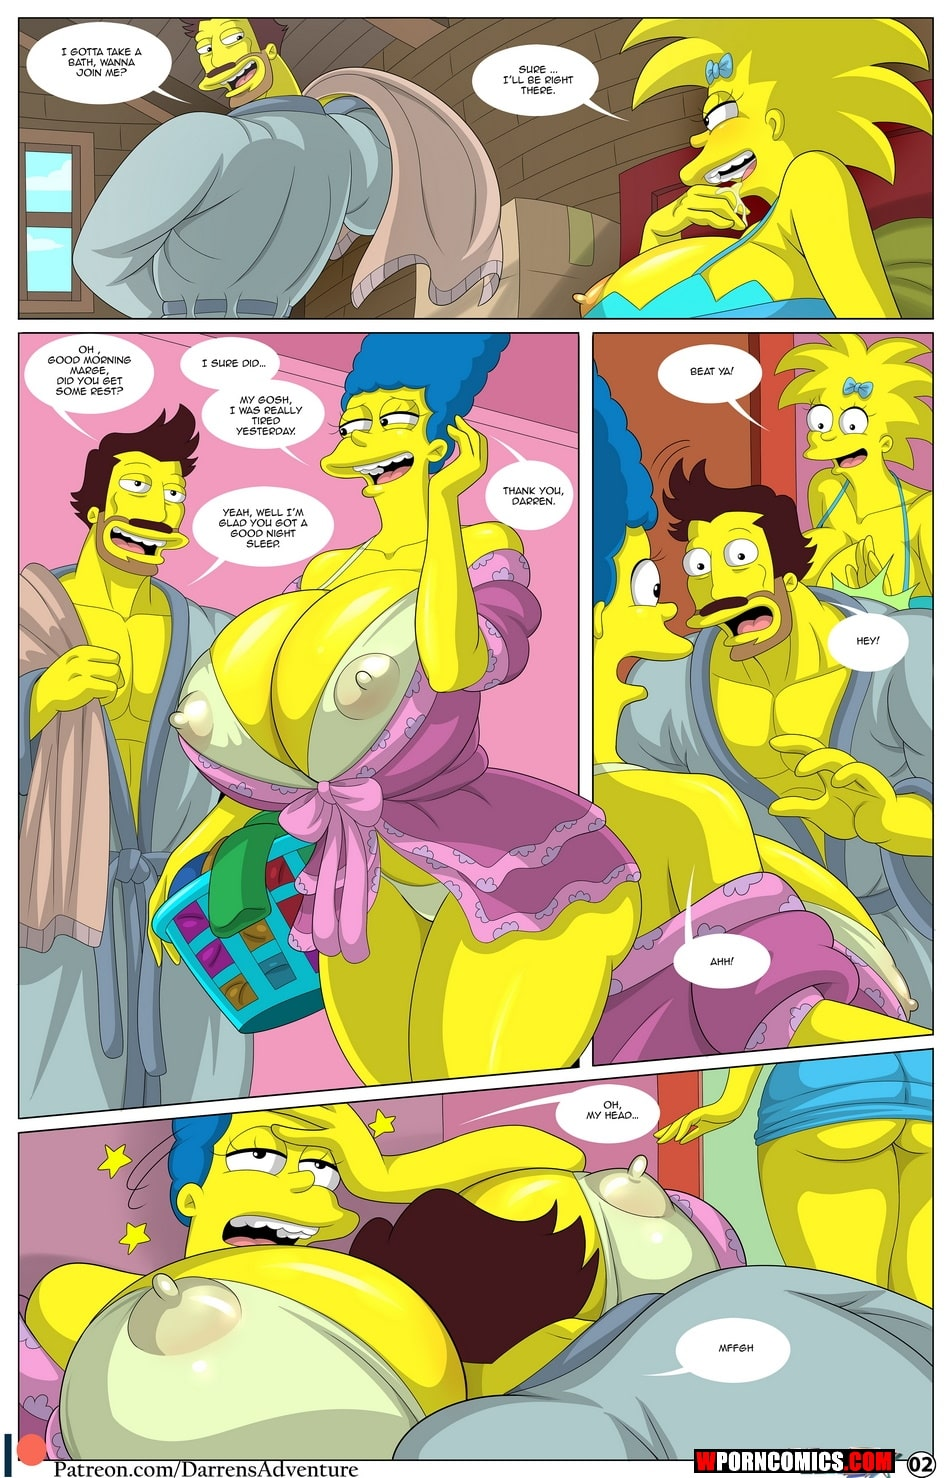 porn-comic-darrens-adventure-part-6-simpsons-2020-03-24/porn-comic-darrens-adventure-part-6-simpsons-2020-03-24-8344.jpg